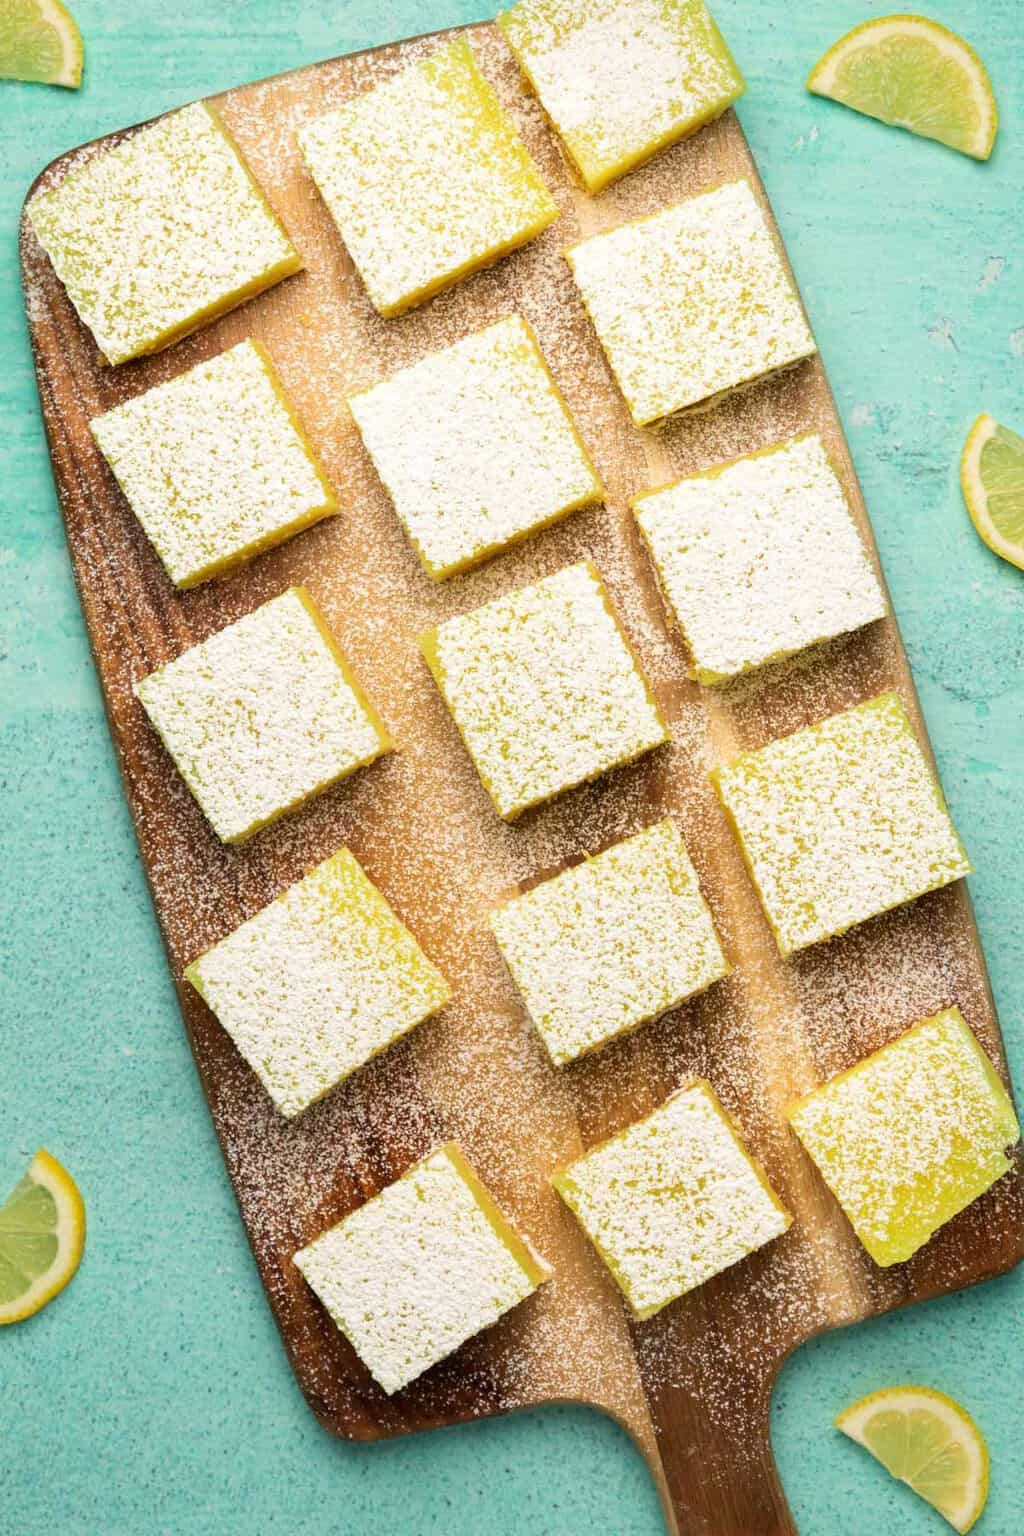 Vegan lemon bars cut into squares on a wooden board.